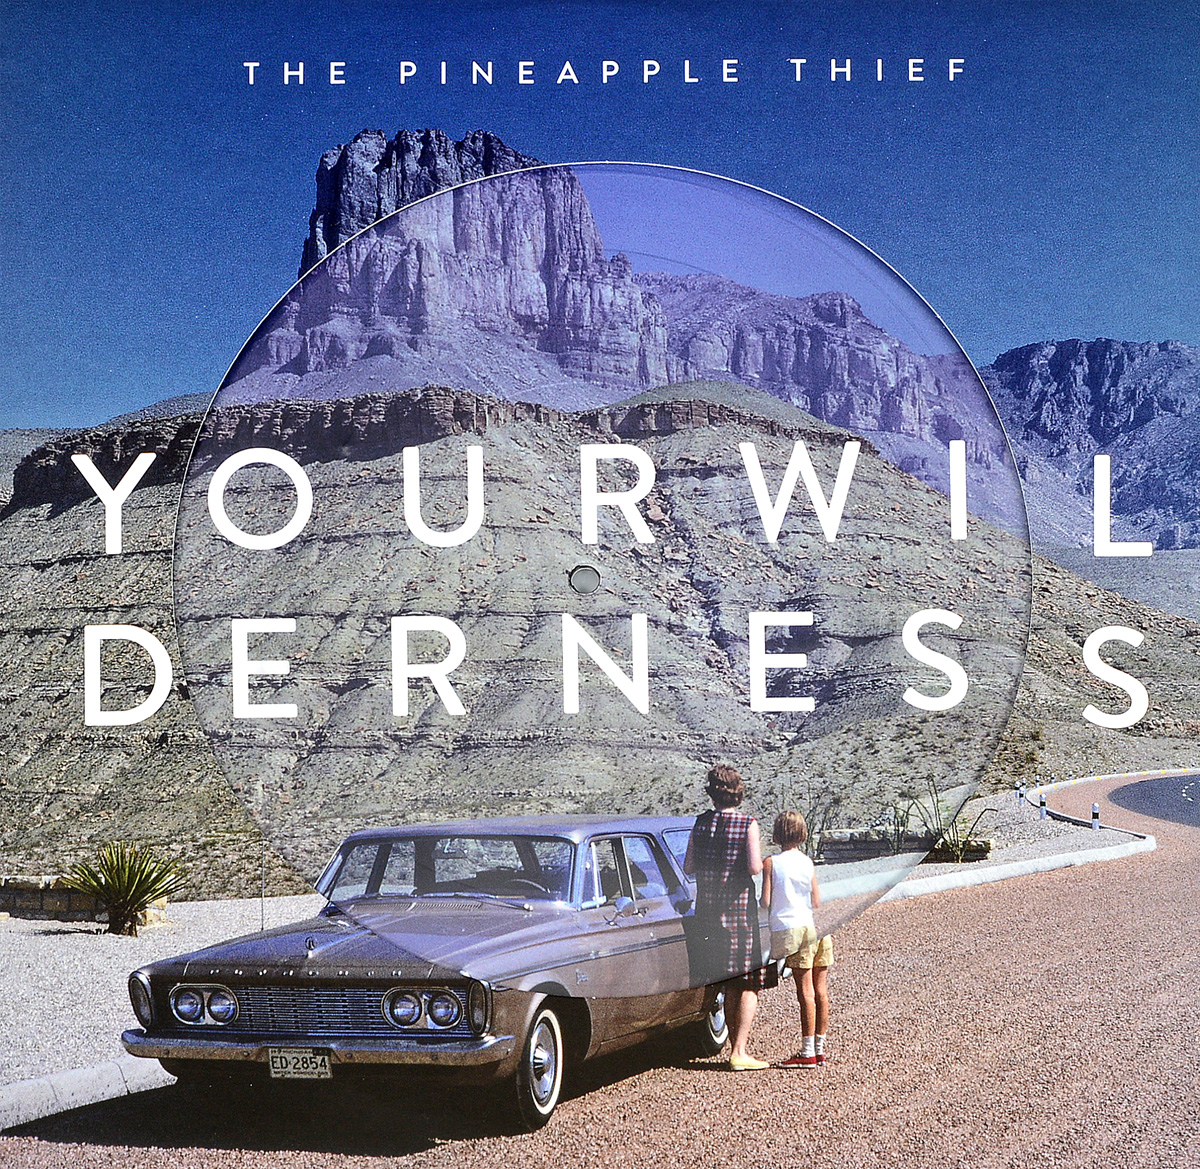 The Pineapple Thief THE PINEAPPLE THIEF. Your Wilderness (LP)